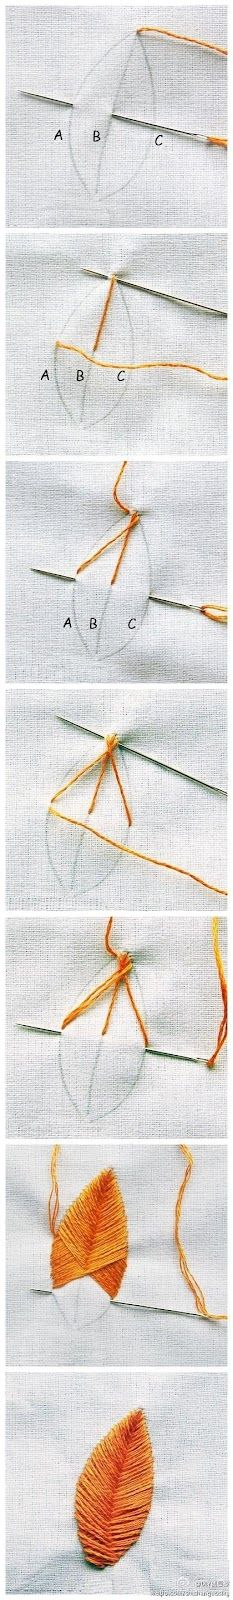 How to embroider leaves. Find all your embroidery needs here http://shop.vibesandscribes.ie/